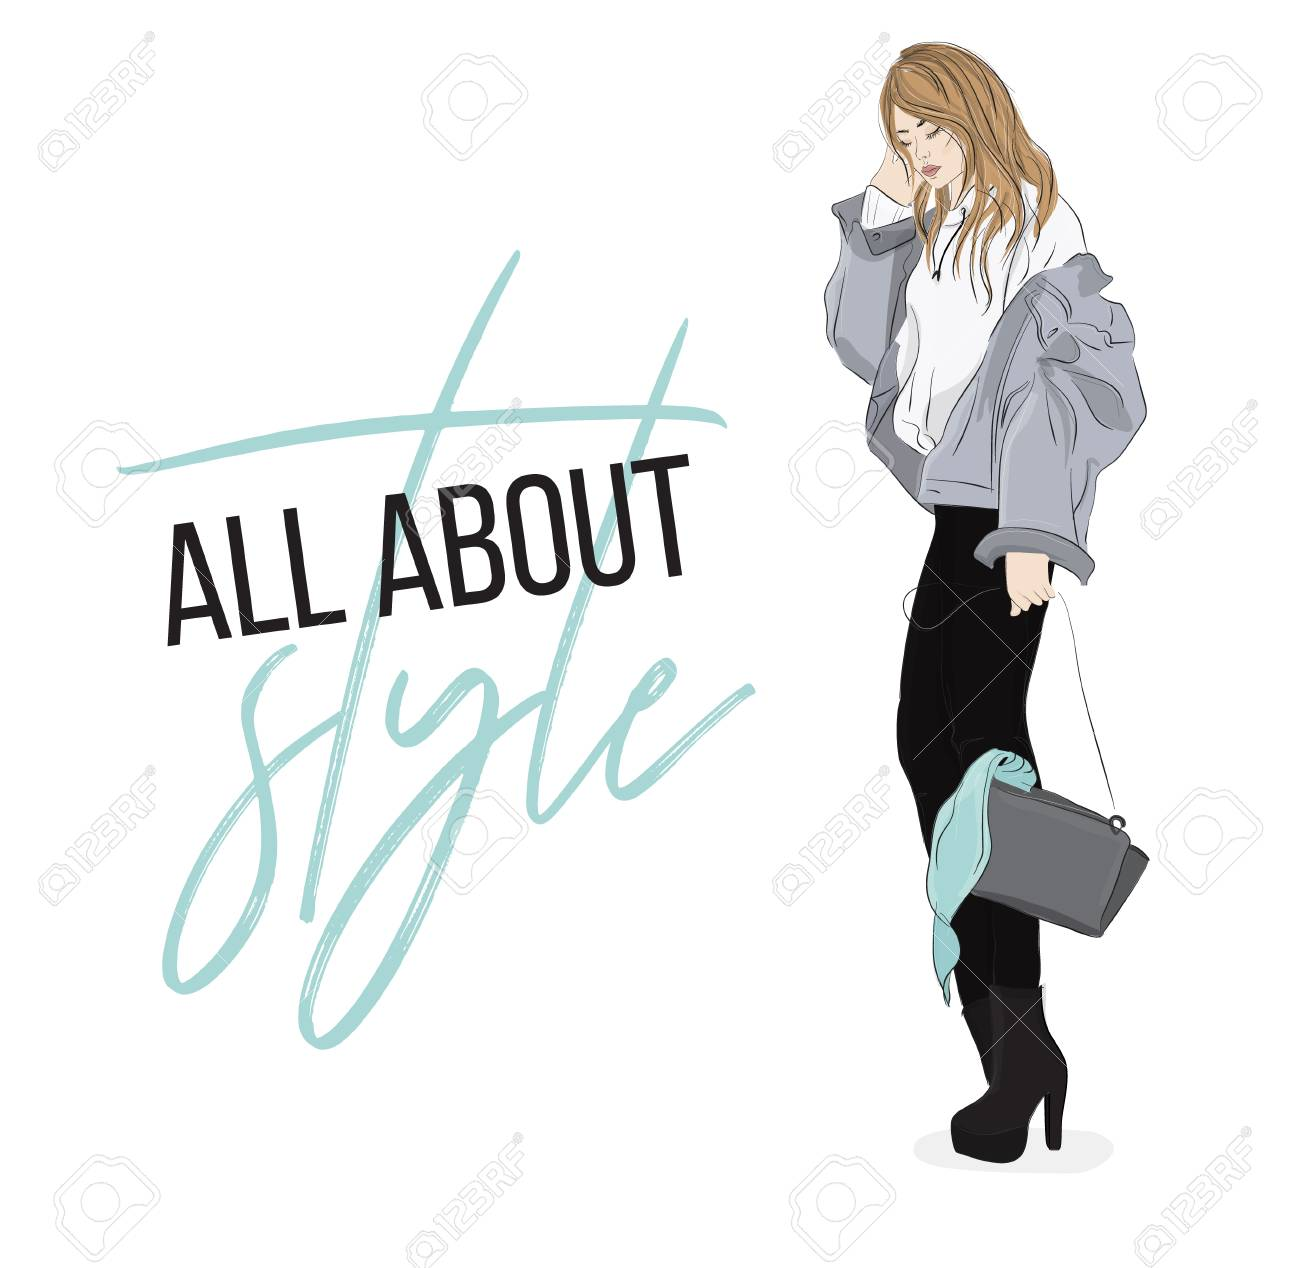 Fashion Illustration Casual Look Outfit Woman In Denim Jacket